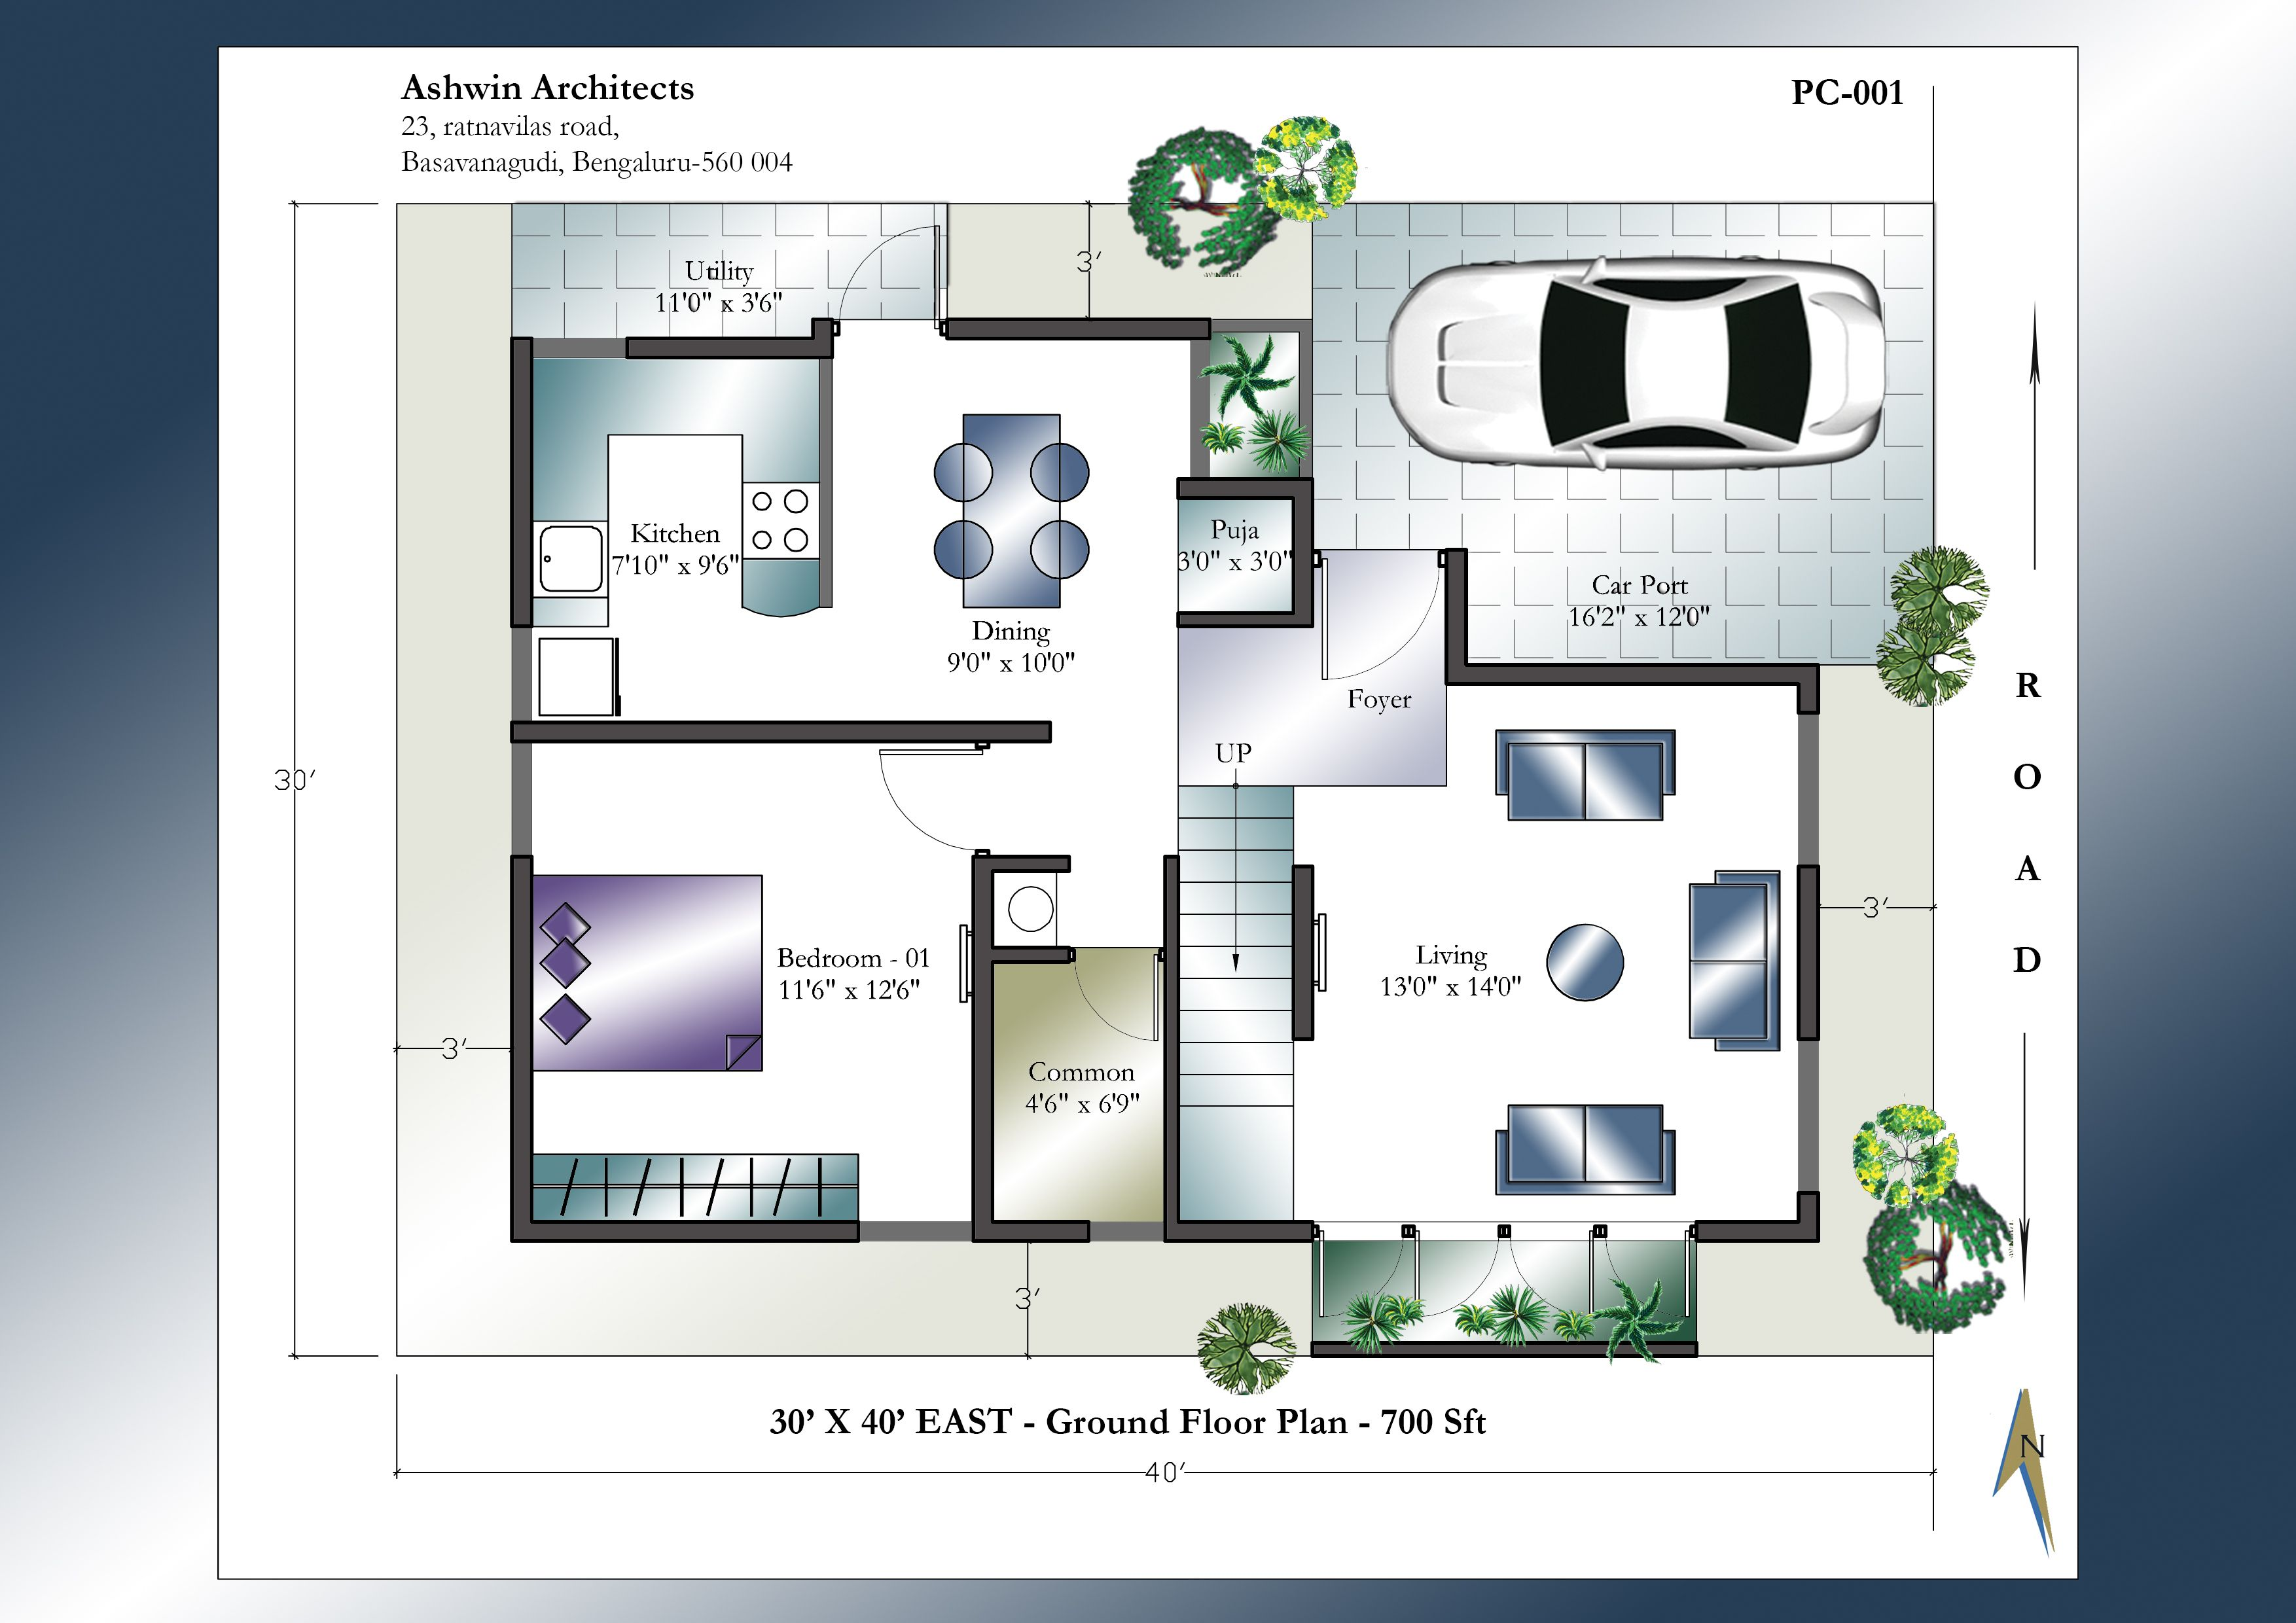 House Plans With Photos 3d house plans Looking For Modern 30 X 40 East Facing House Plans Get This Modern 30 X